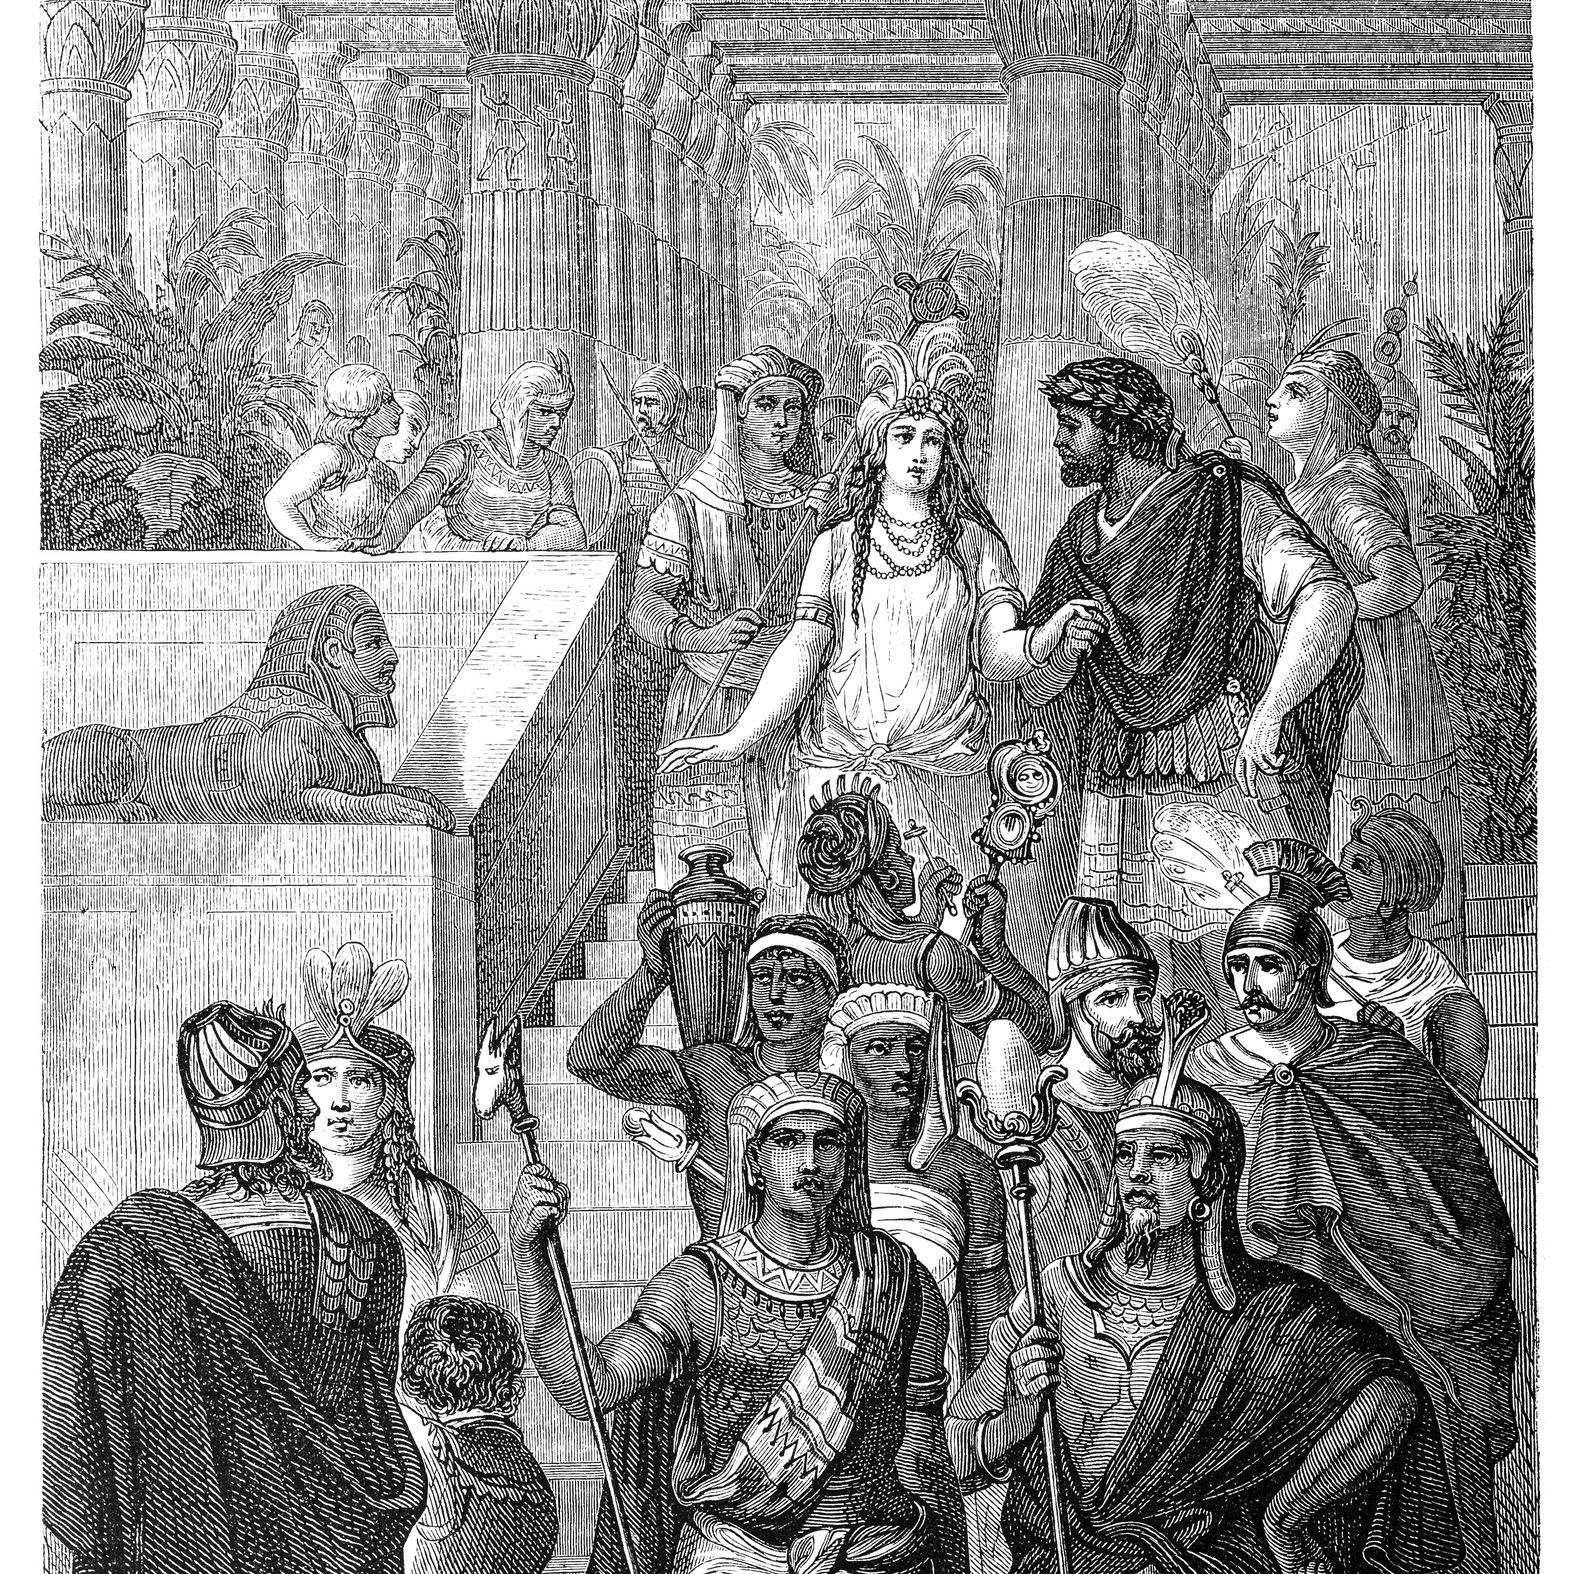 Cleopatra VII Philopator, known as Cleopatra, Last pharaoh of Ancient Egypt with Mark Antony in the first Century BC